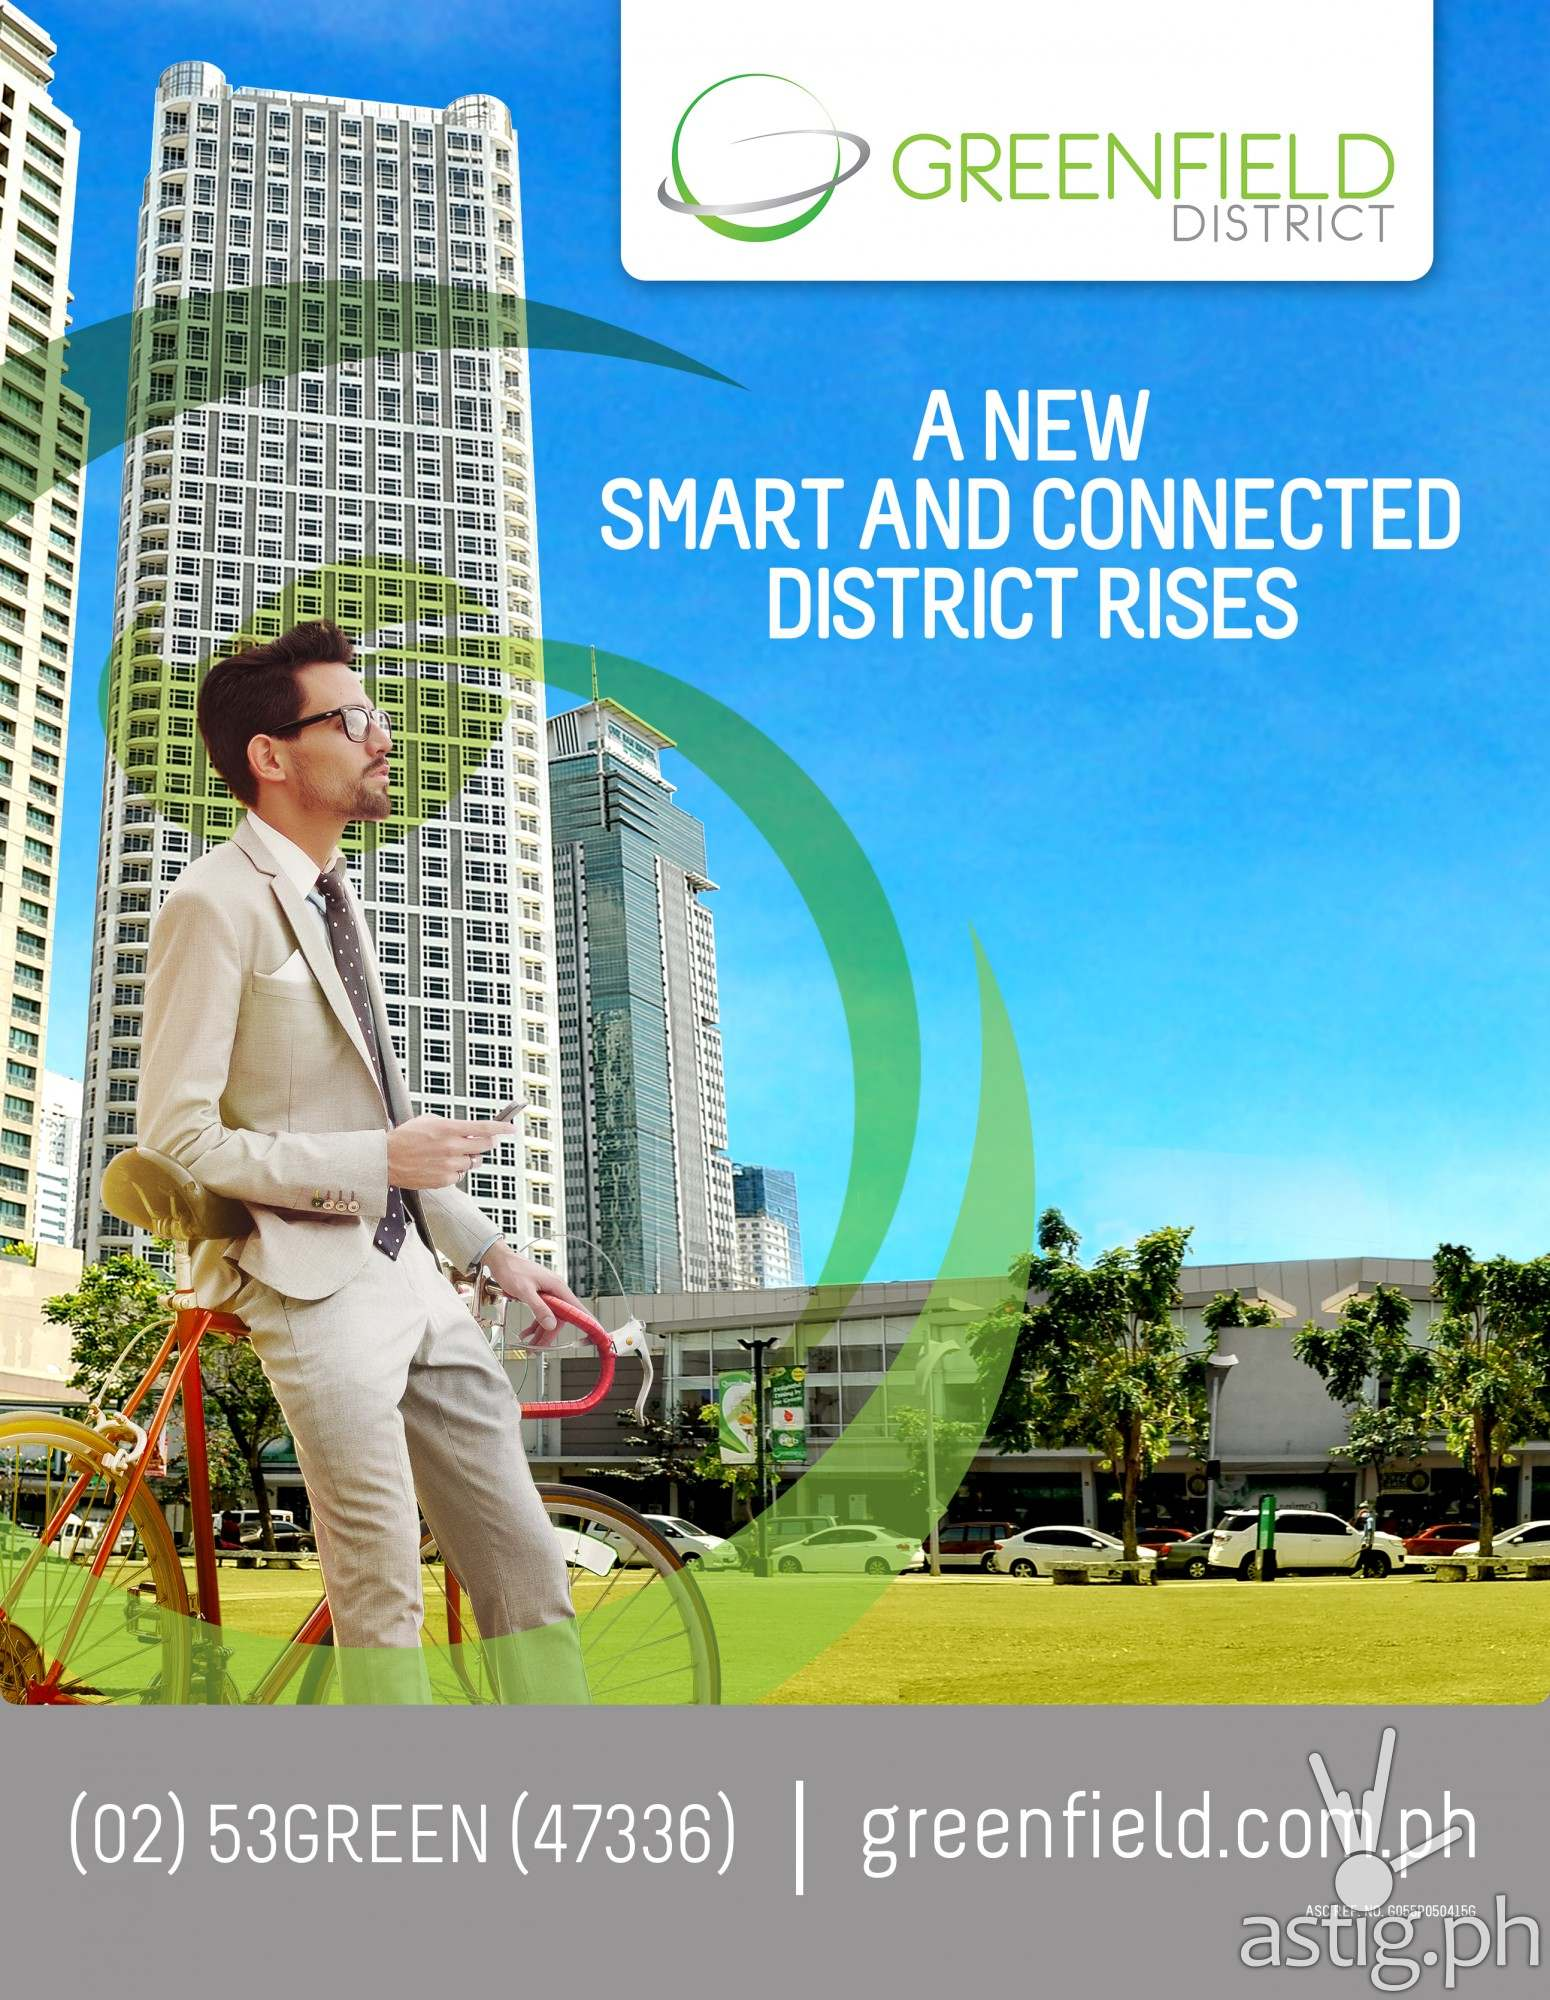 FA GREENFIELD DISTRICT WHOLE PAGE AD